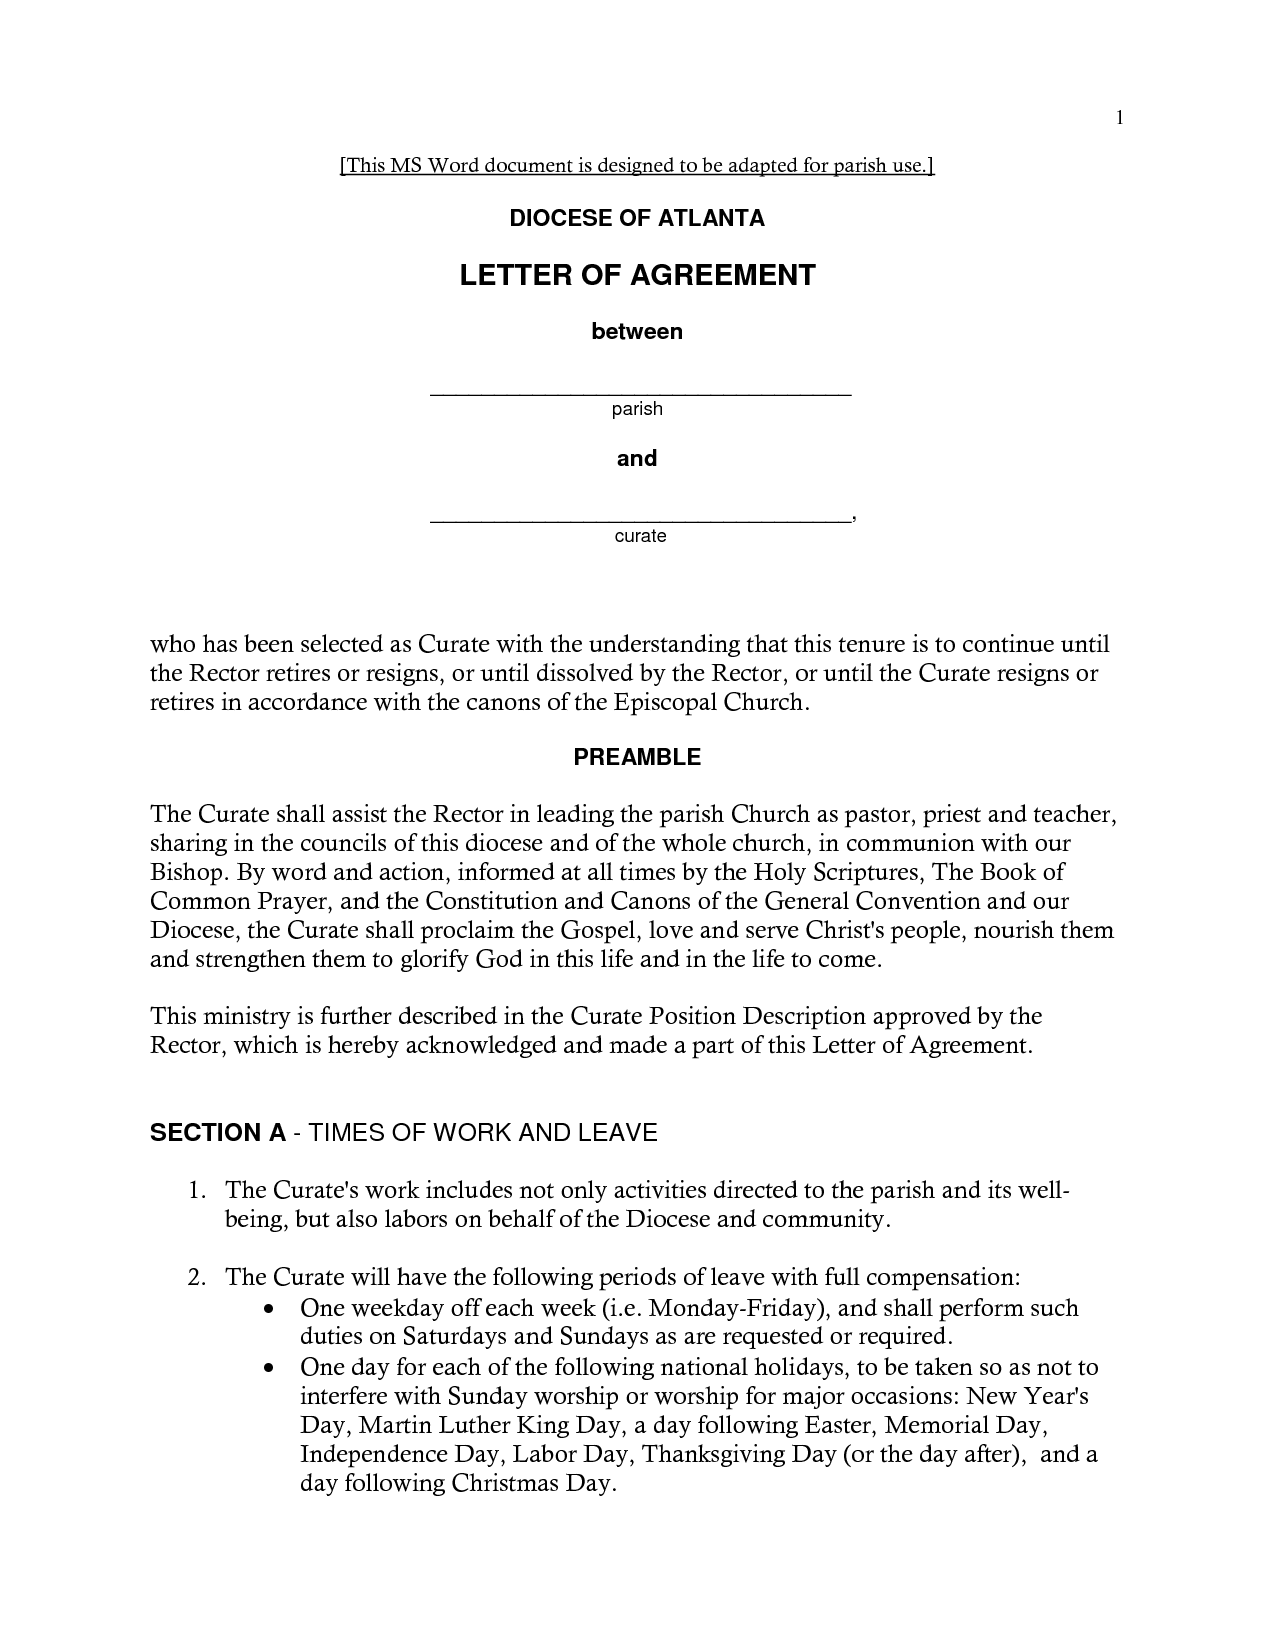 Sample letter of loan agreement Sample letter of agreement pbs – Money Contract Template